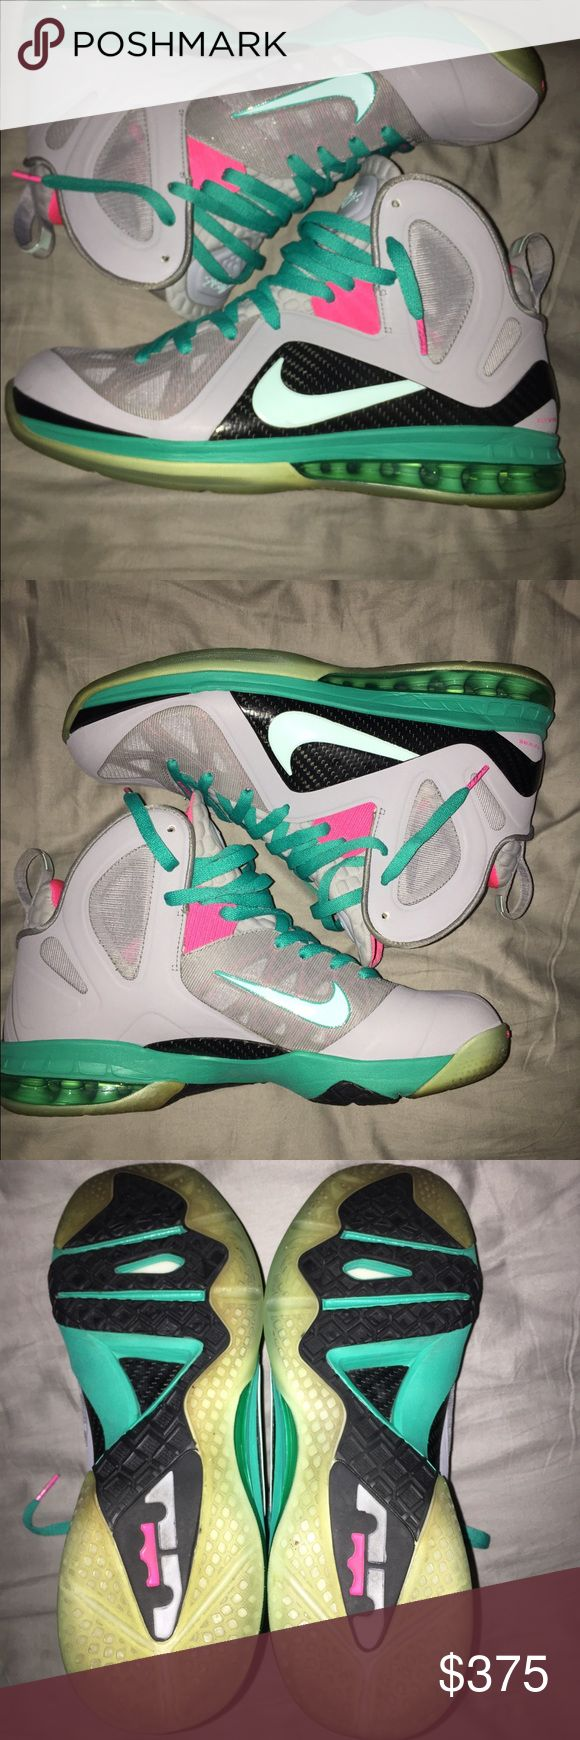 !! Lebron South Beach Sz 10.5 !! Condition 9/10. No box. Only flaw in my opinion that sole is yellowing from age. Can provide more pics/ details. Nike Shoes Sneakers